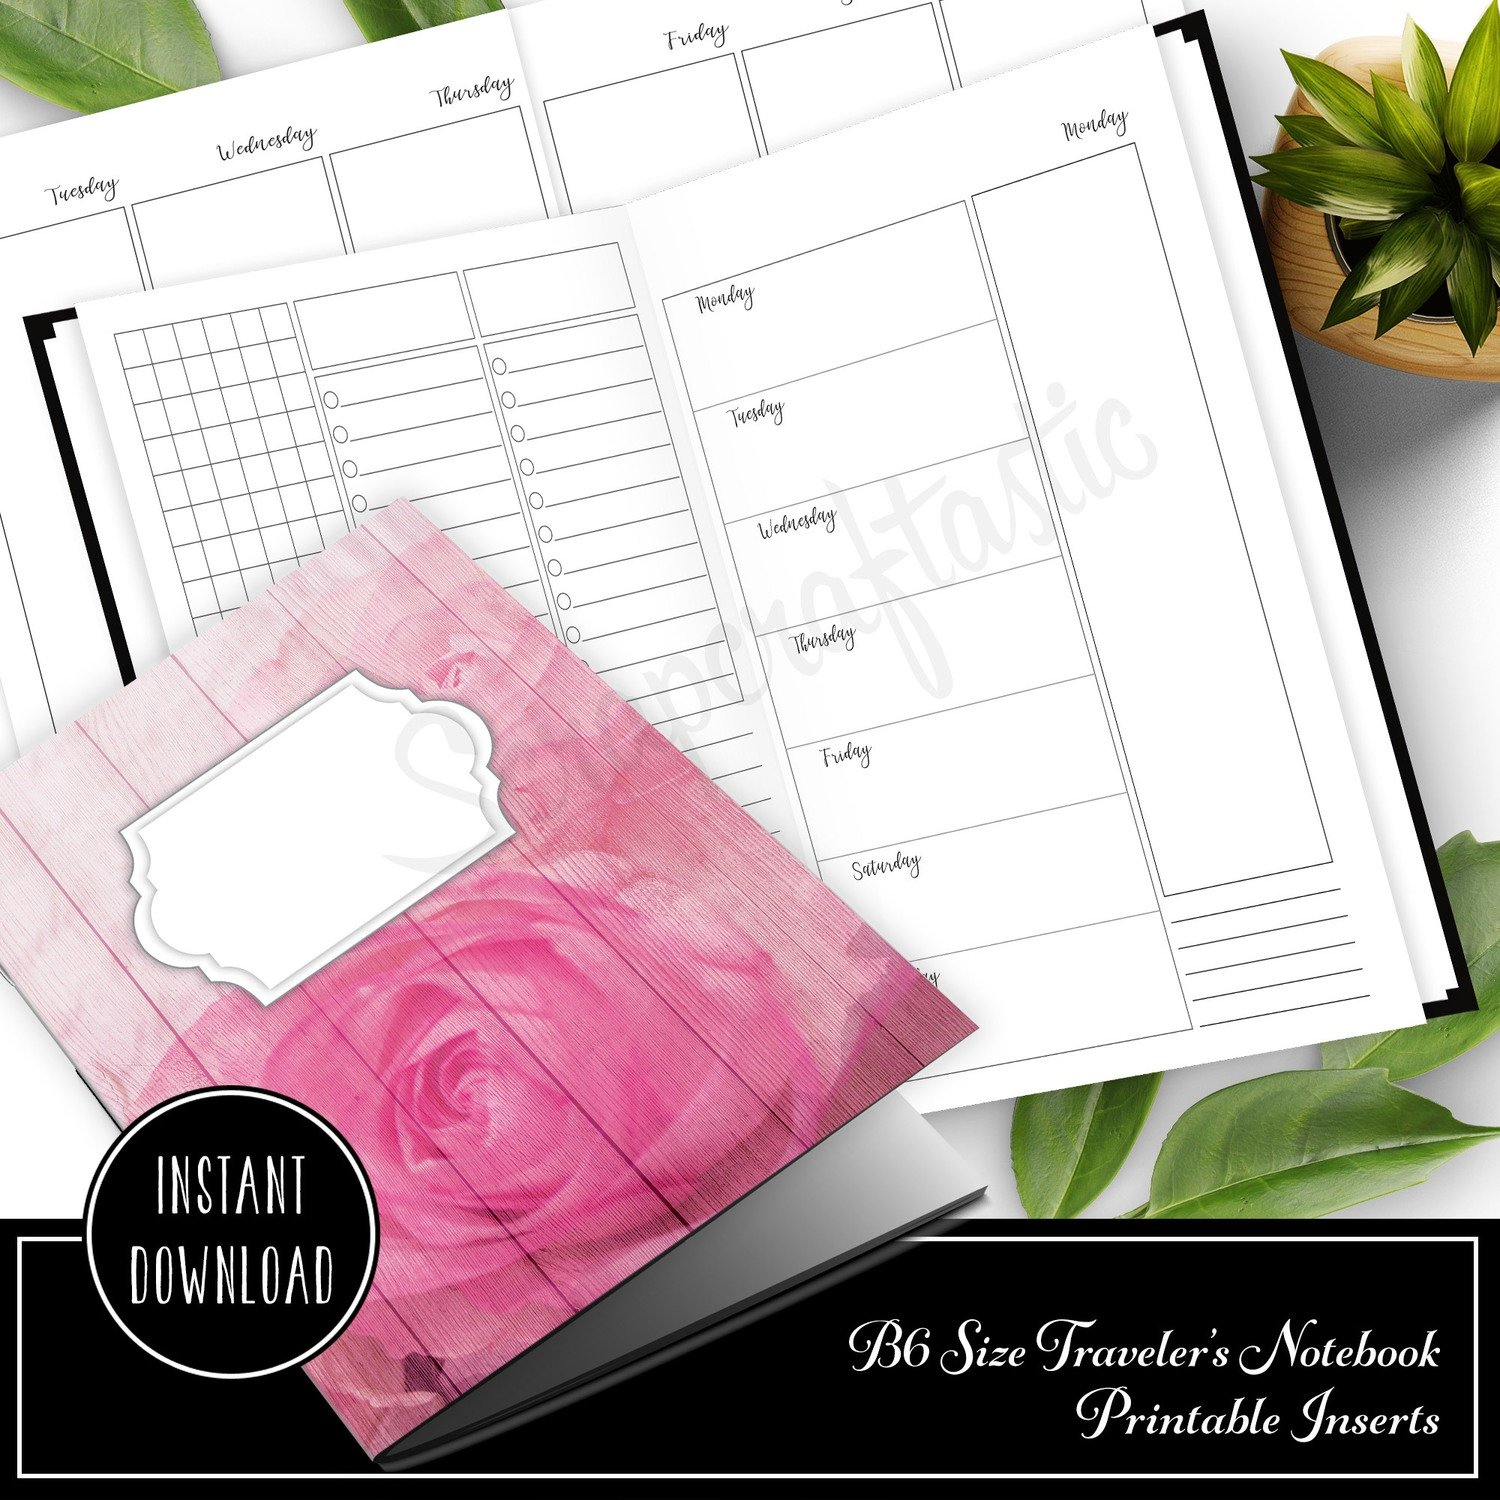 Deluxe Horizontal Vertical Week on Four Pages (WO4P) B6 Traveler's Notebook Printable Inserts